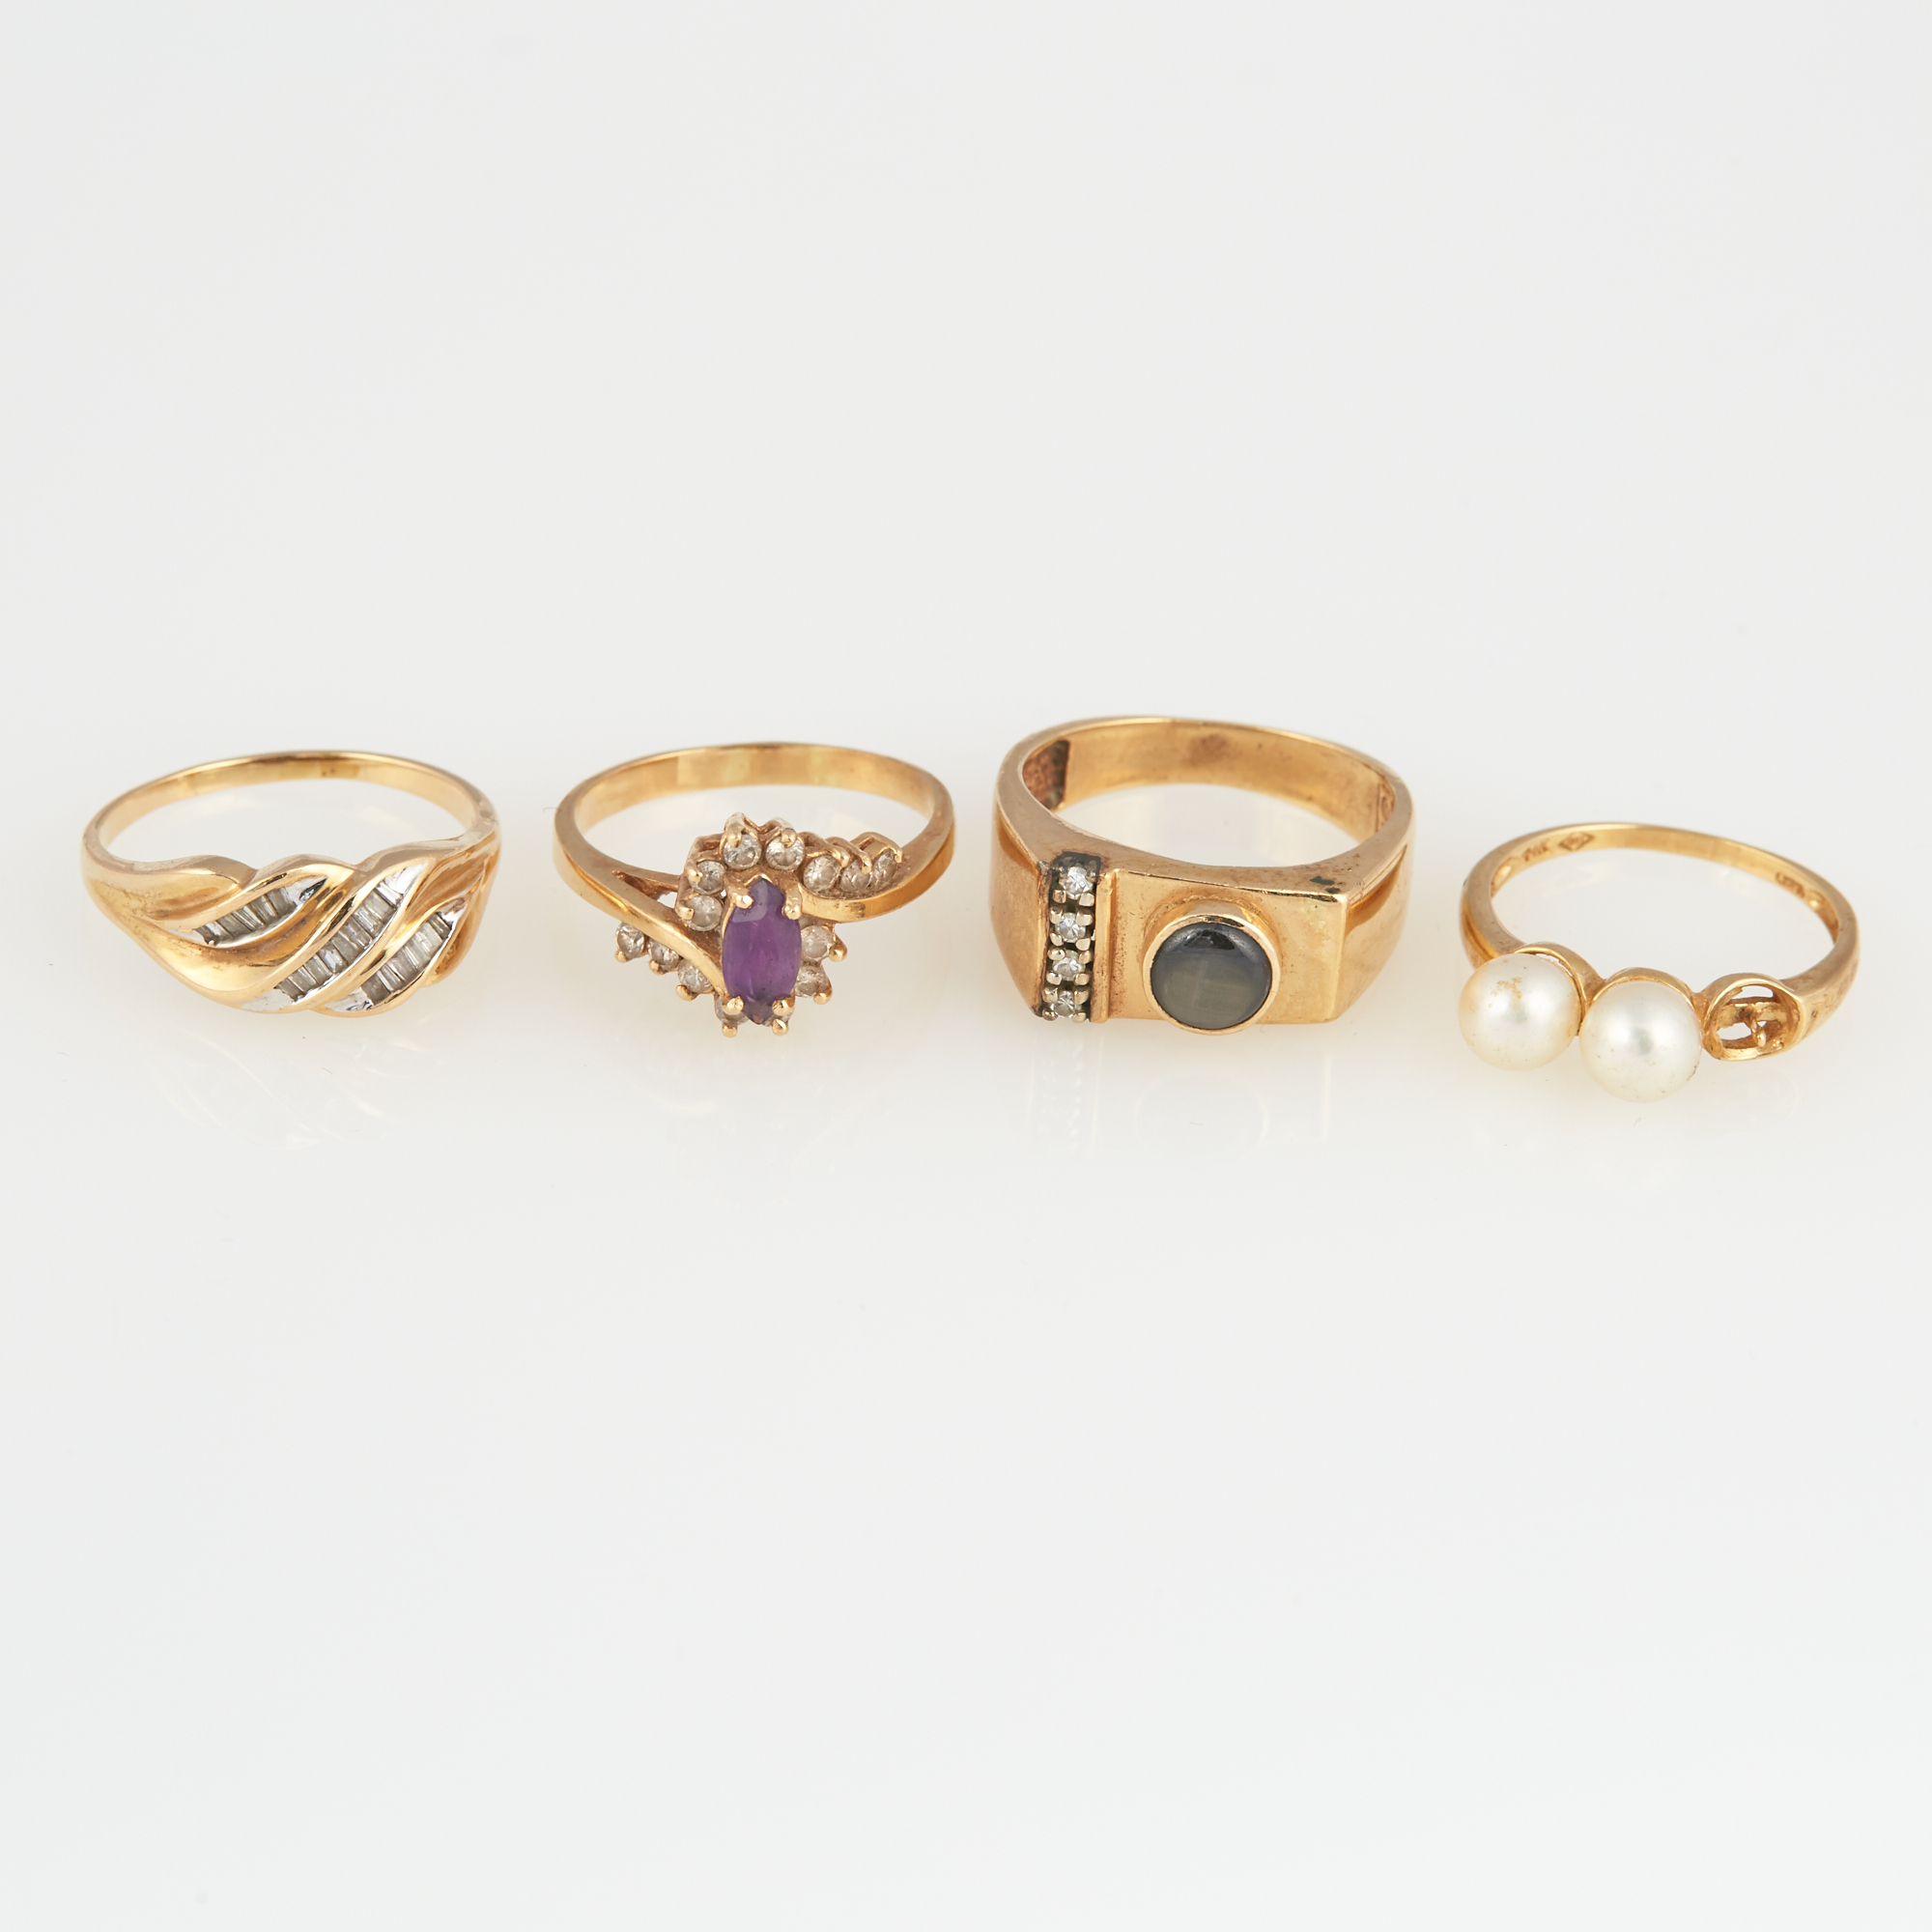 Lot image - Three Diamond and Stone Rings and Gold and Bead Ring, 14K 10 dwt. all, bead missing